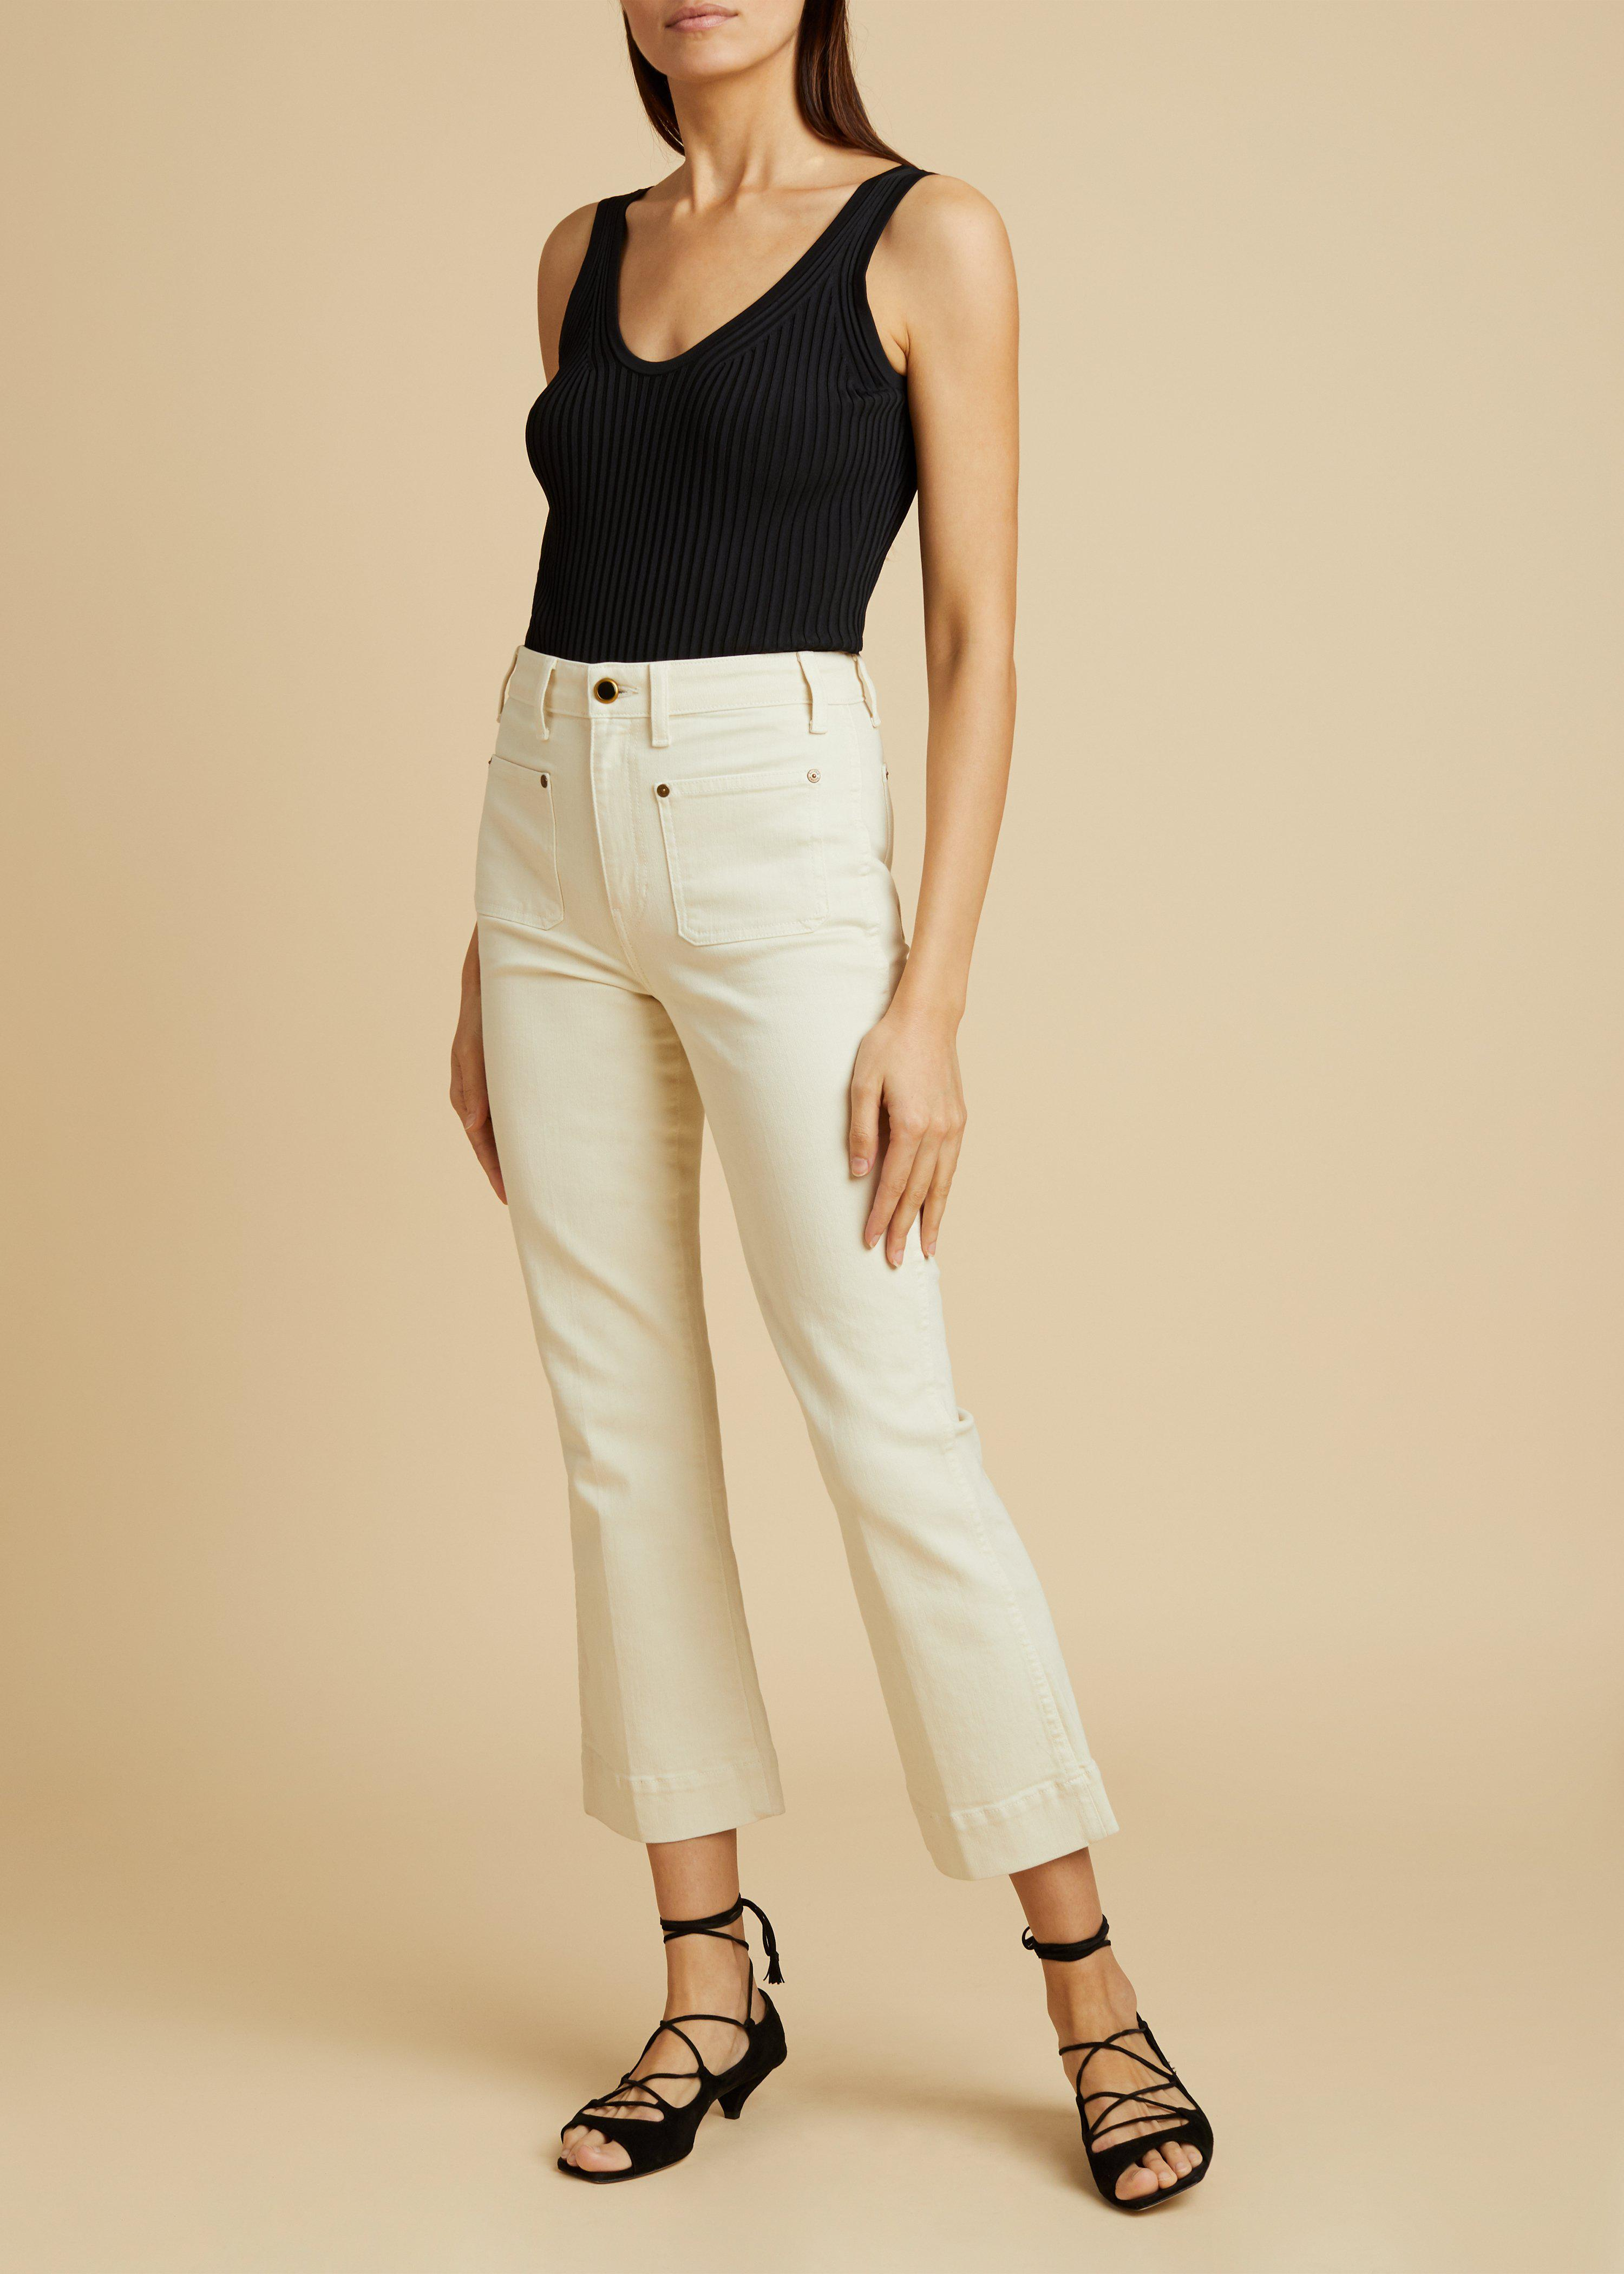 The Raquel Jean in Ivory 0